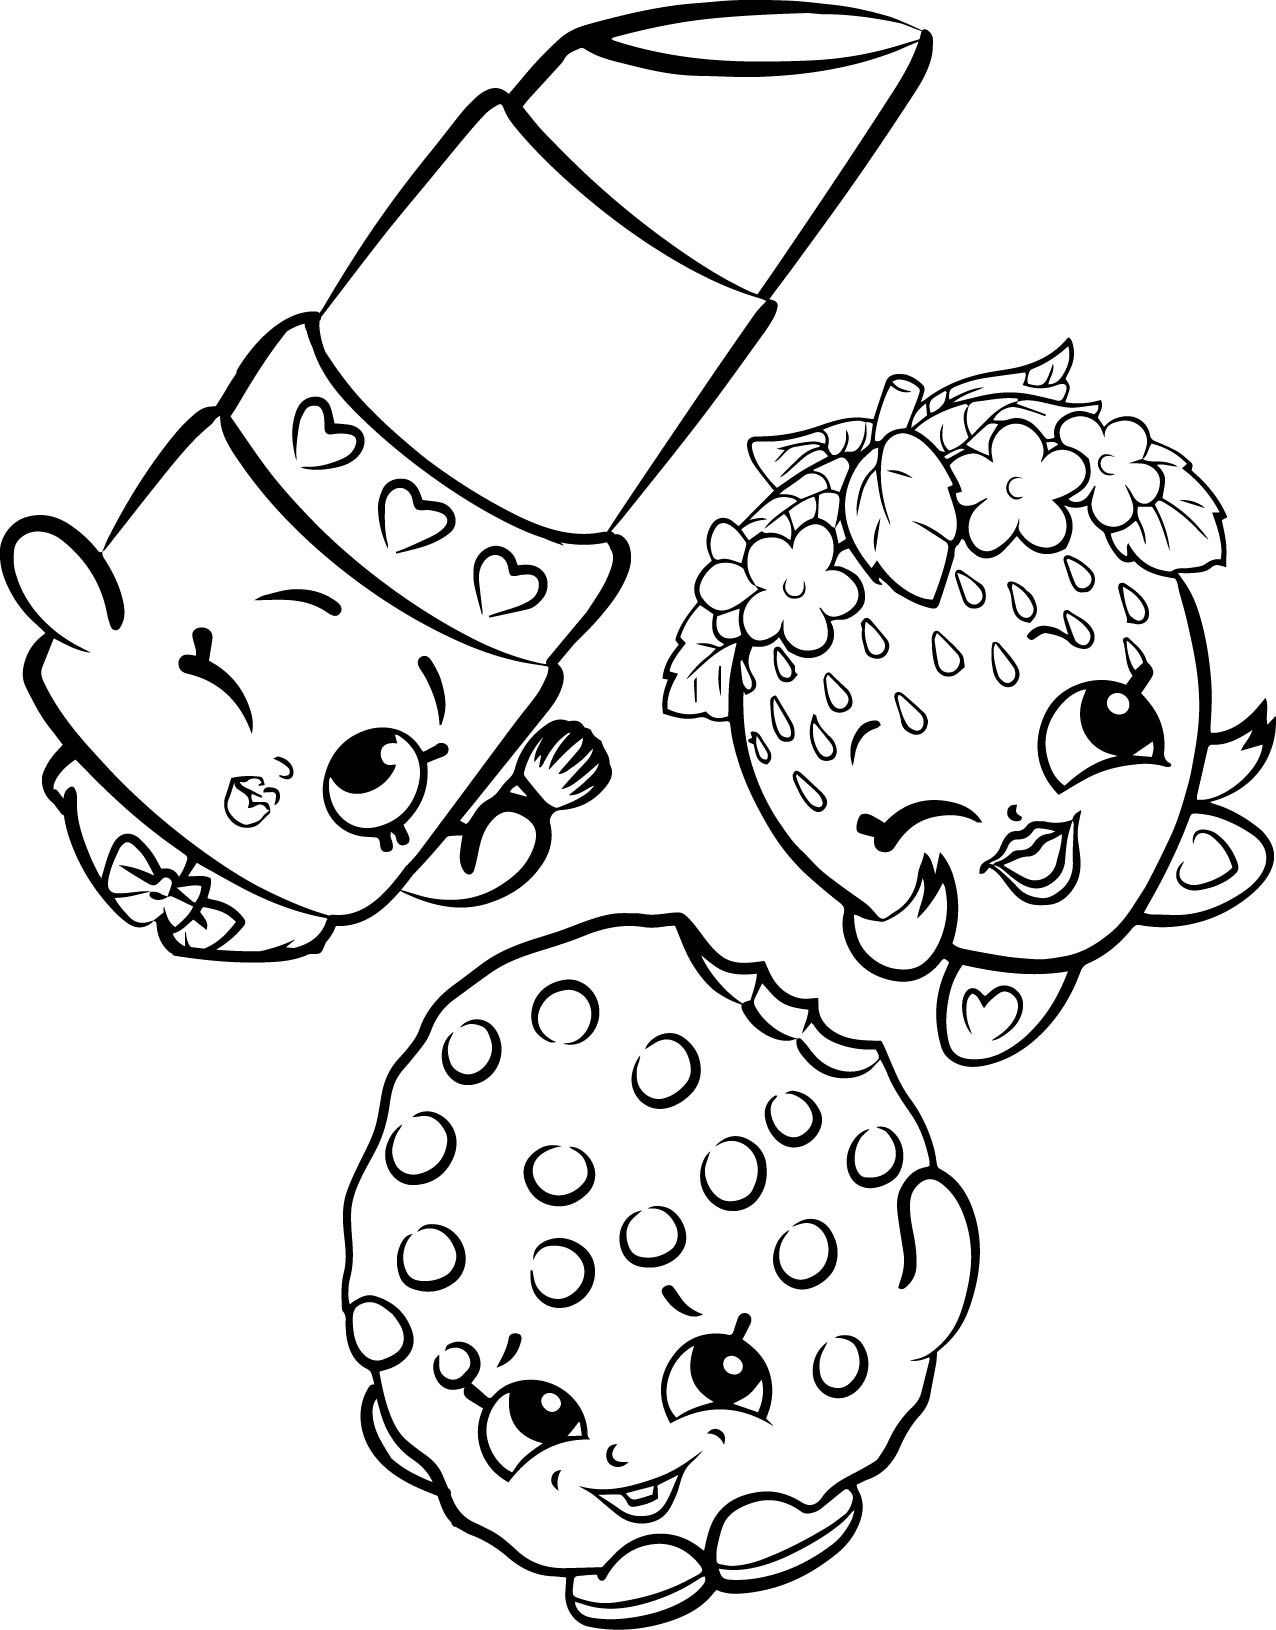 Co Coloring Sheet Elmo - Your mouth will water with these new shopkins coloring pages but don t eat